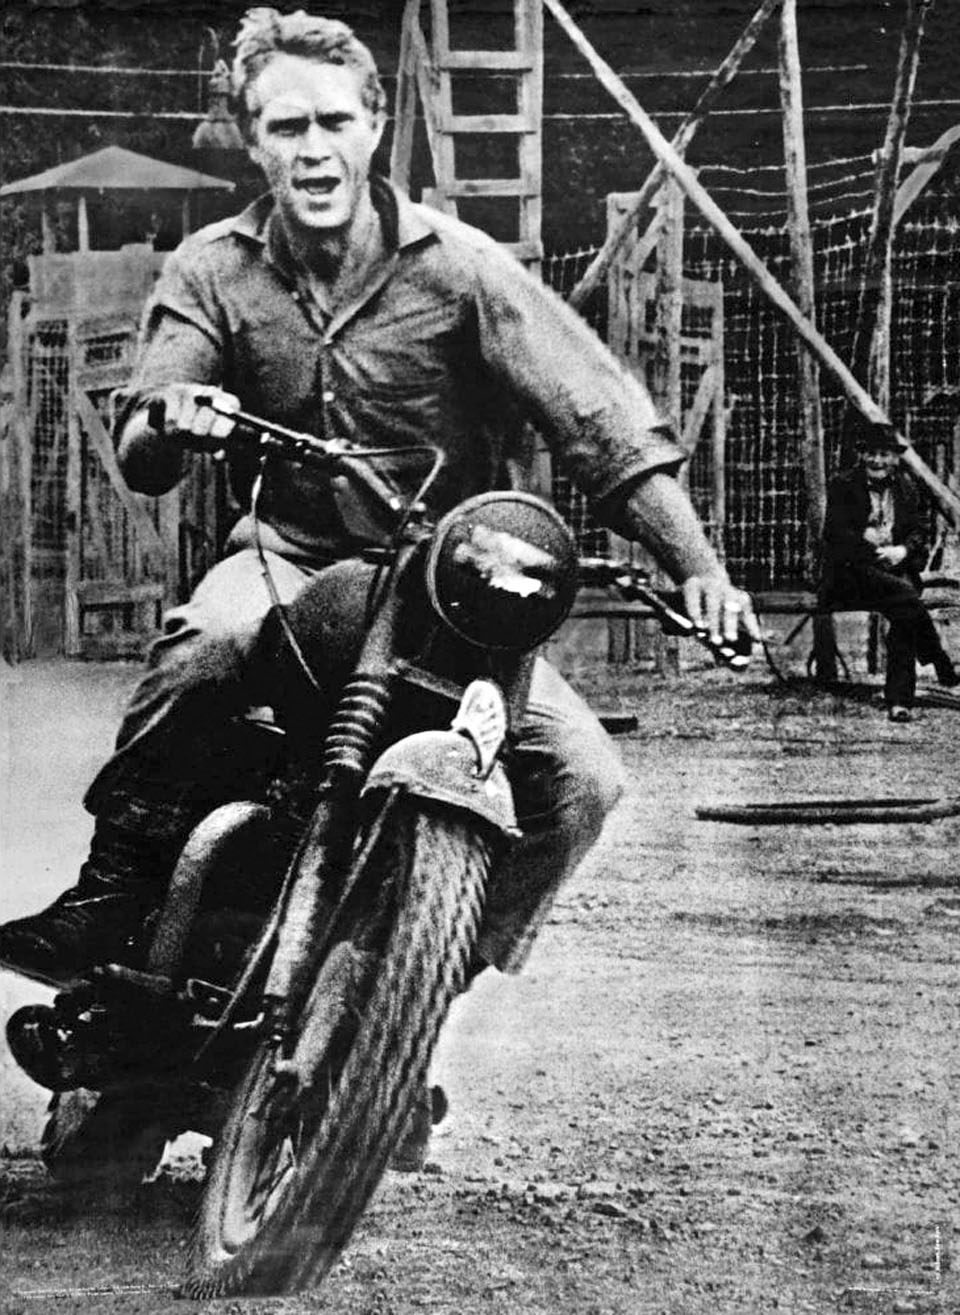 Steve McQueen in  The Great Escape.